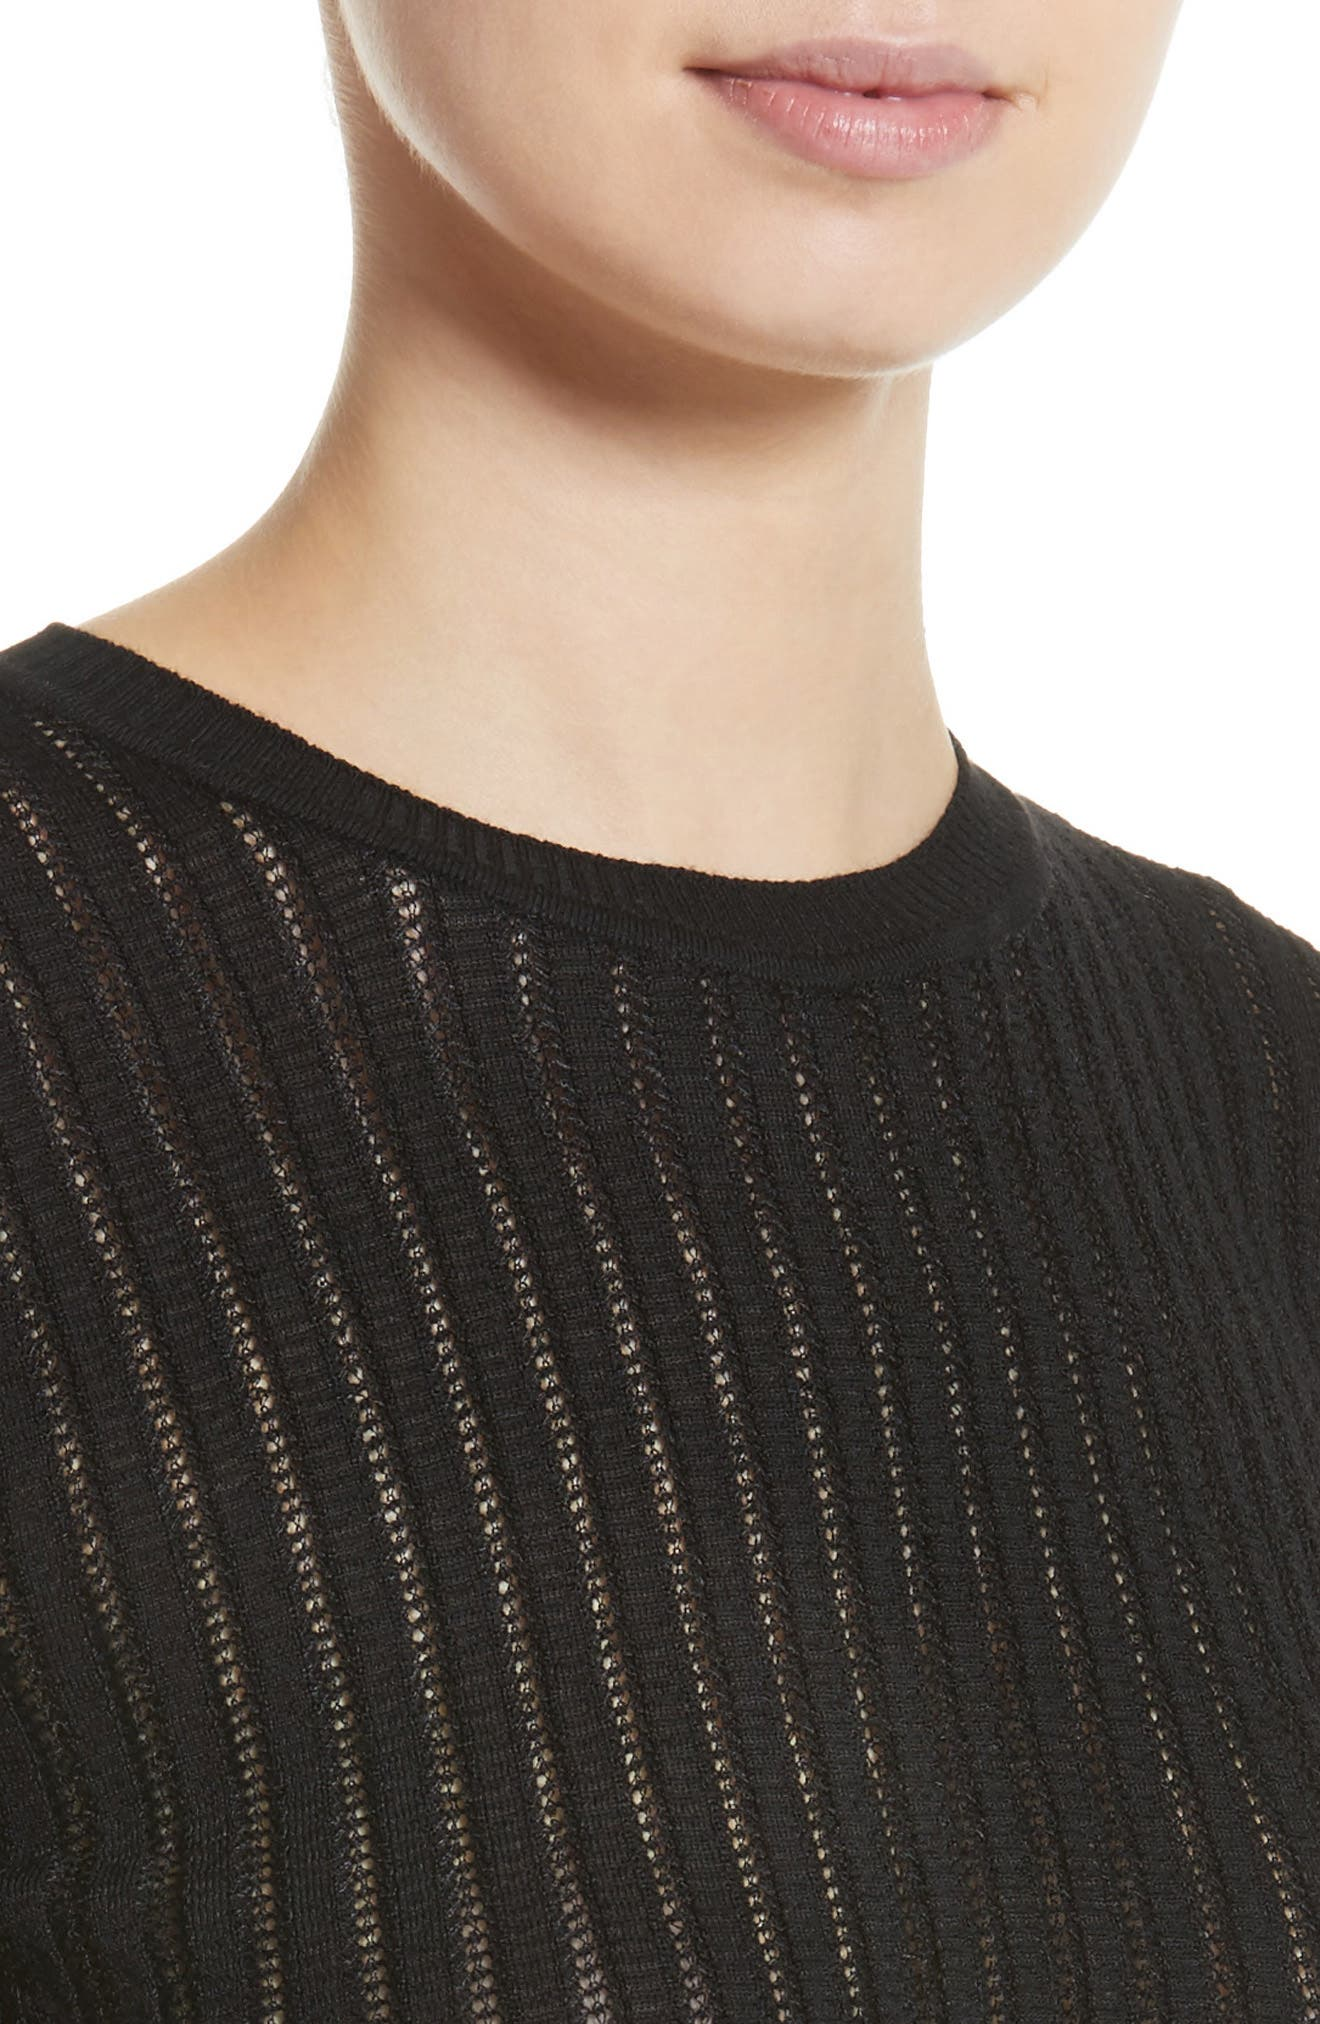 Knit Wool Blend Sweater,                             Alternate thumbnail 4, color,                             Black